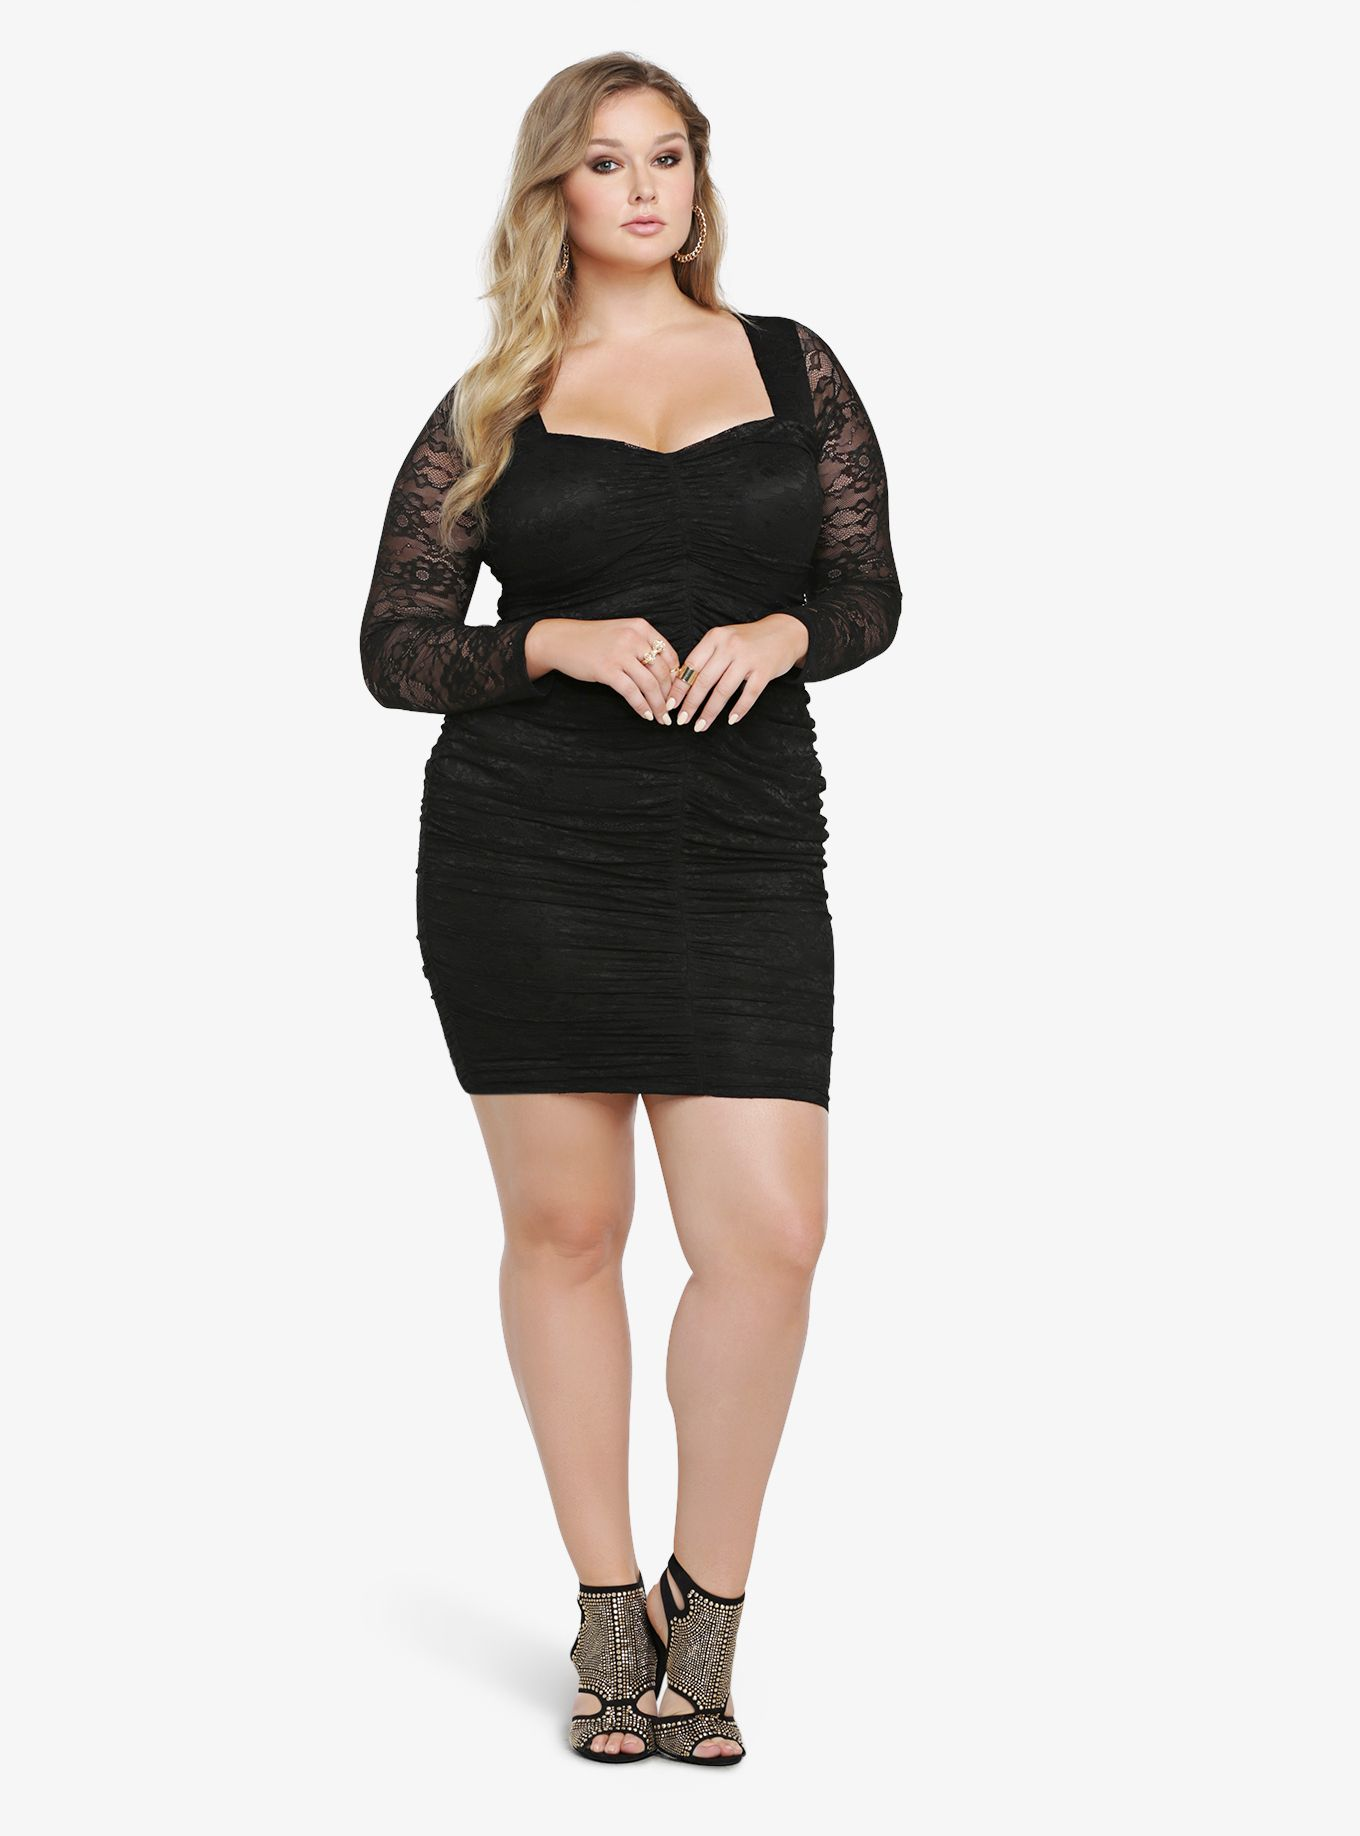 Lace dress torrid  Shirred Lace Bodycon Dress  Torrid Bodycon dress and Spring summer